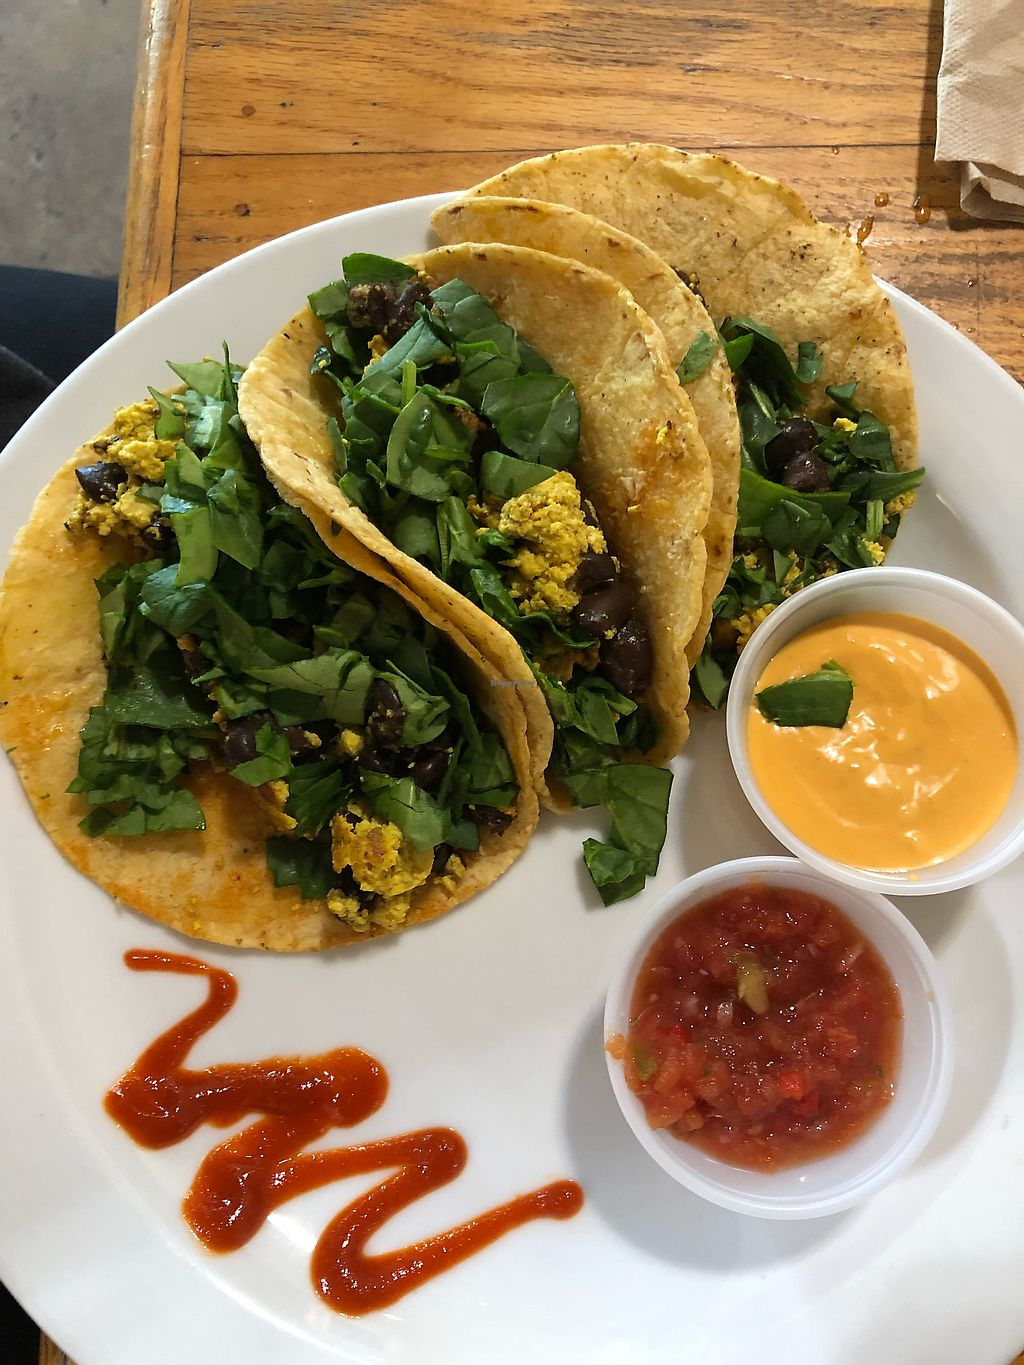 """Photo of The Sentient Bean  by <a href=""""/members/profile/KerryElise"""">KerryElise</a> <br/>Vegan breakfast tacos <br/> April 12, 2018  - <a href='/contact/abuse/image/4486/384673'>Report</a>"""